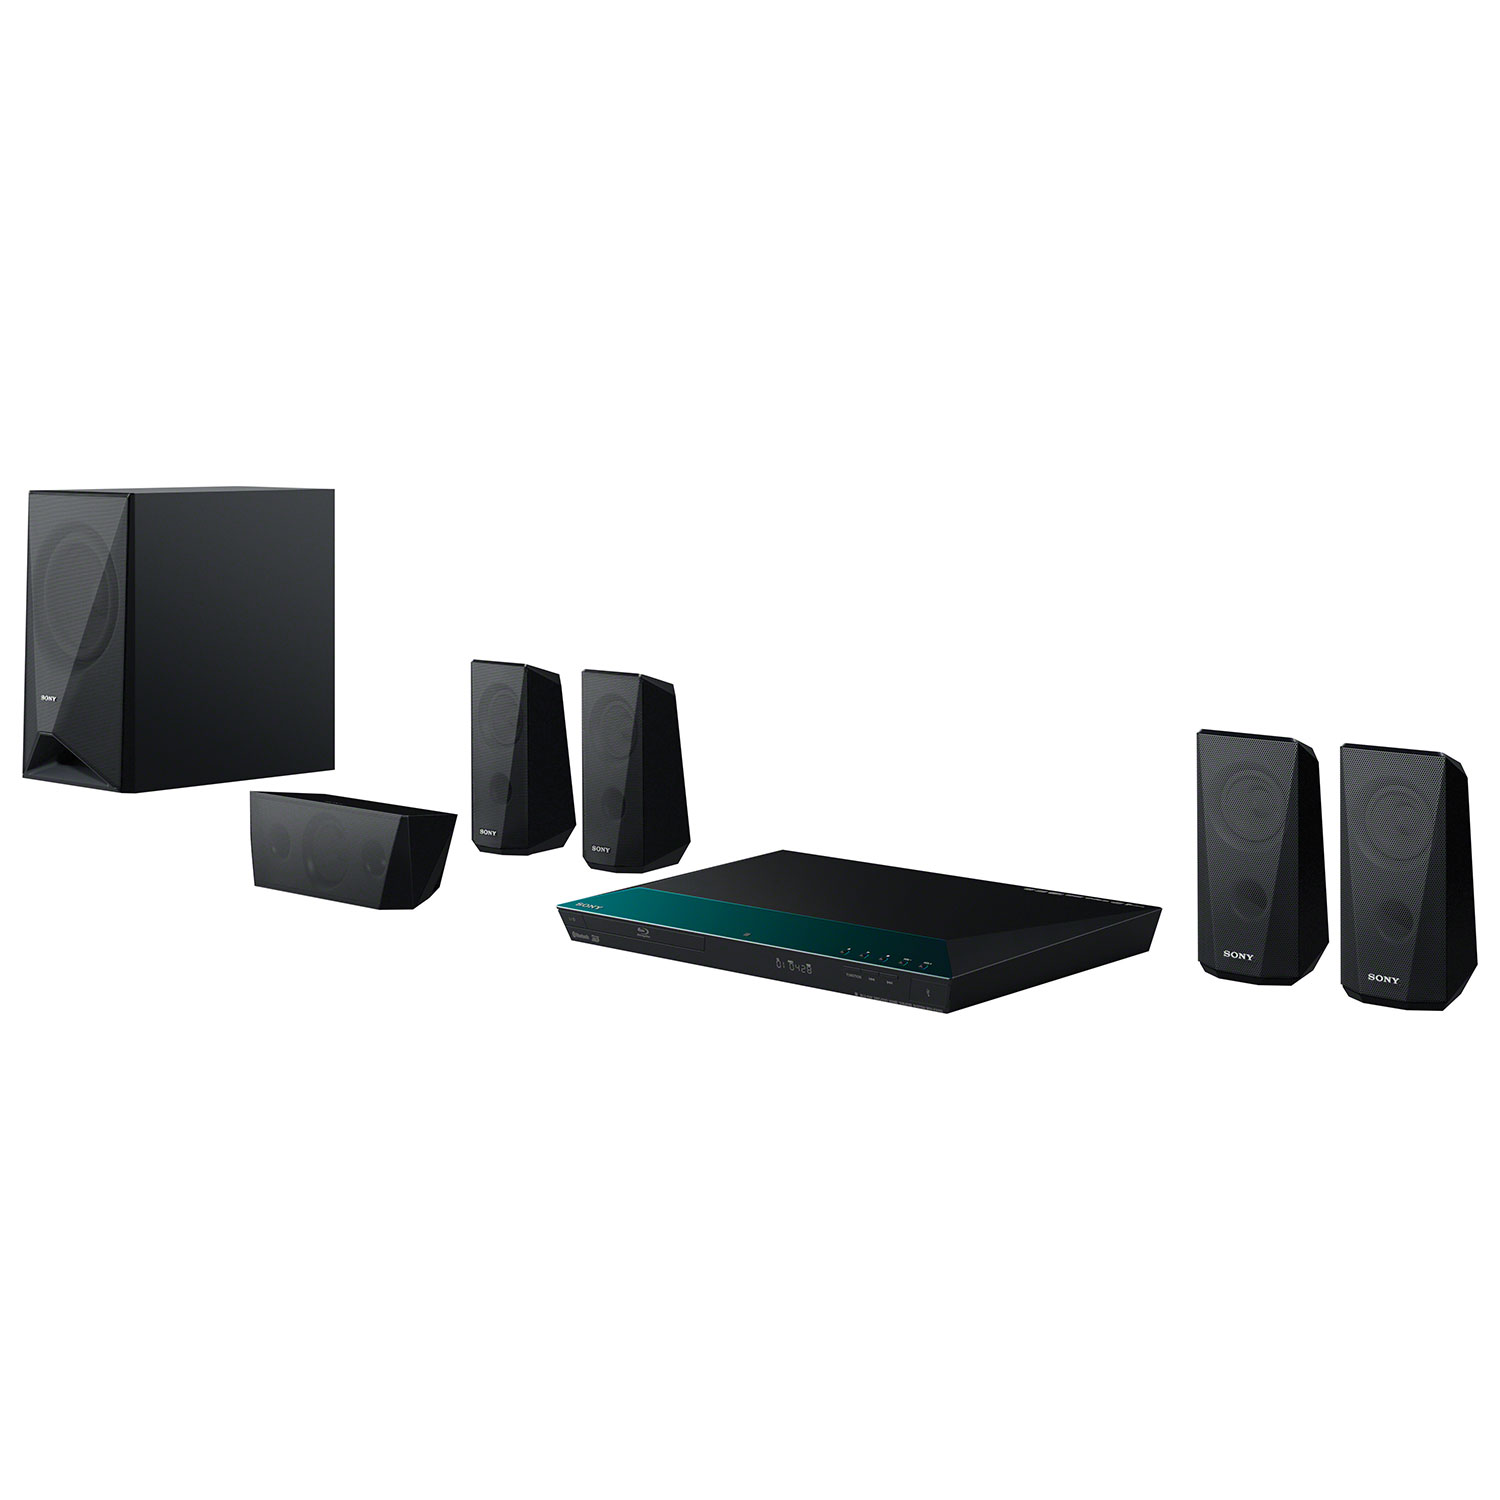 sony 5 1 channel. sony bdve3100 1000-watt 5.1 channel 3d blu-ray home theatre system 5 1